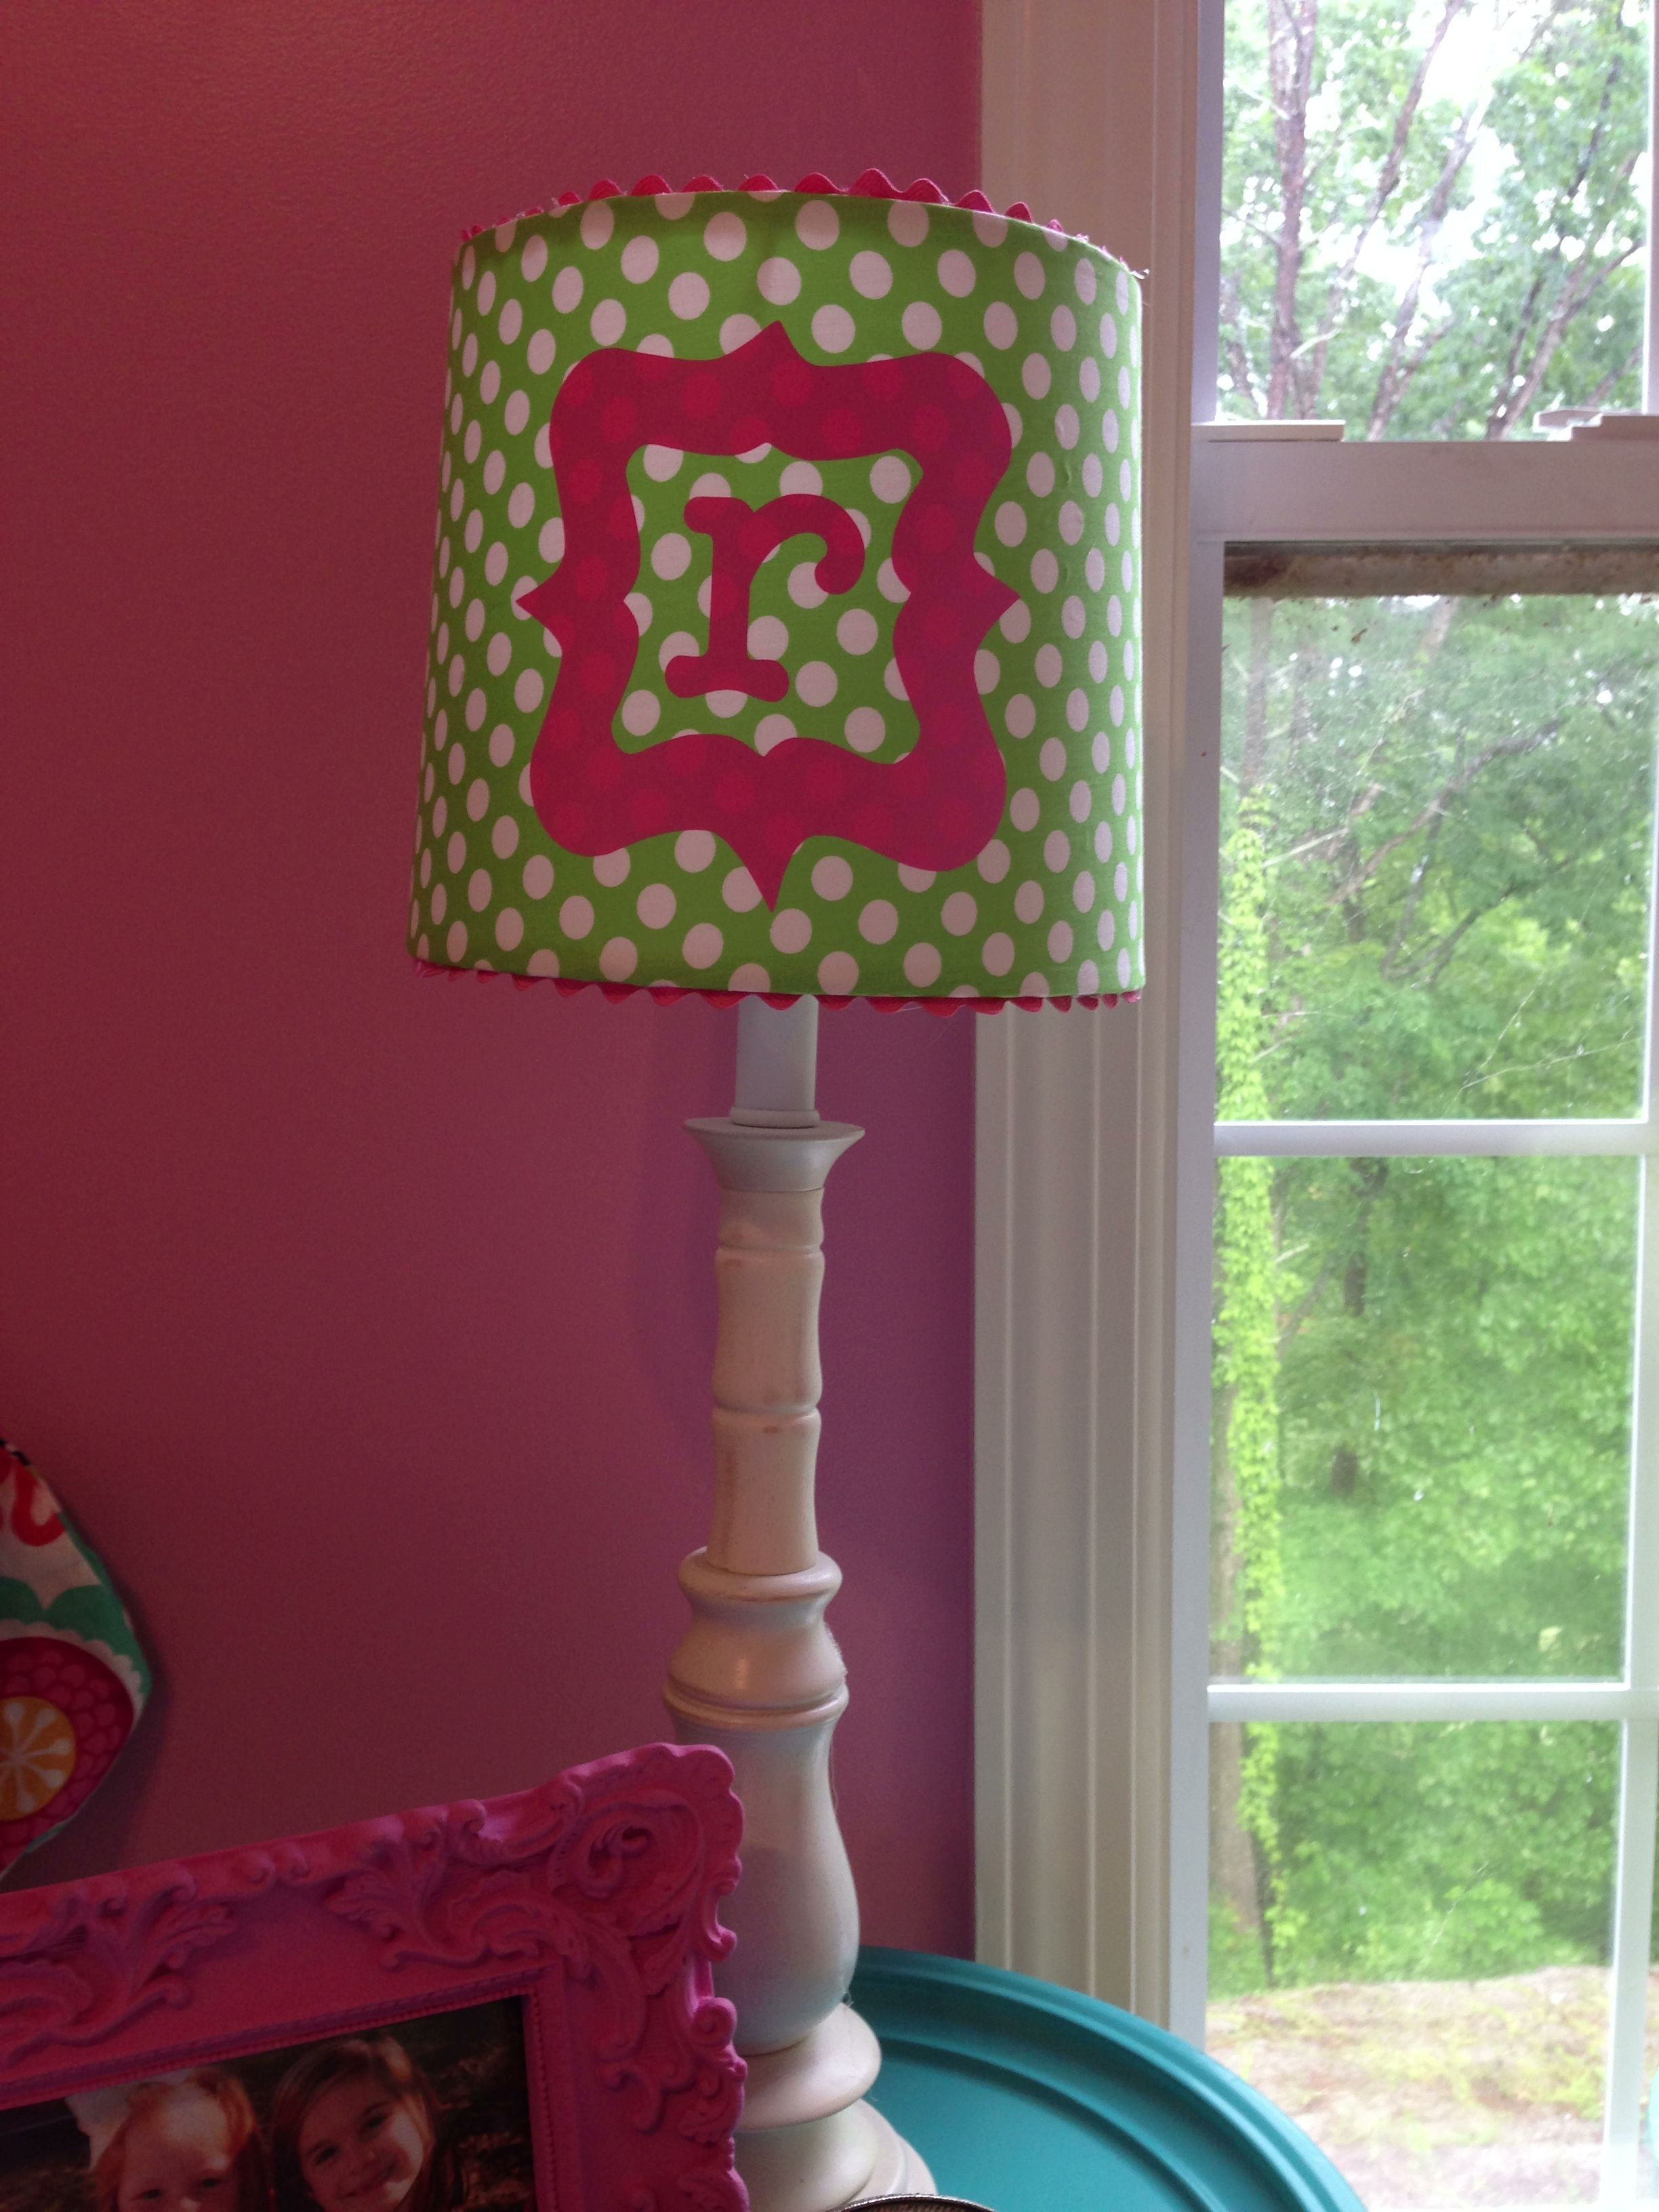 Hobby Lobby Lamp Shades Adorable Self Adhesive Lamp Shade From Hobby Lobby With A Vinyl Design From Inspiration Design